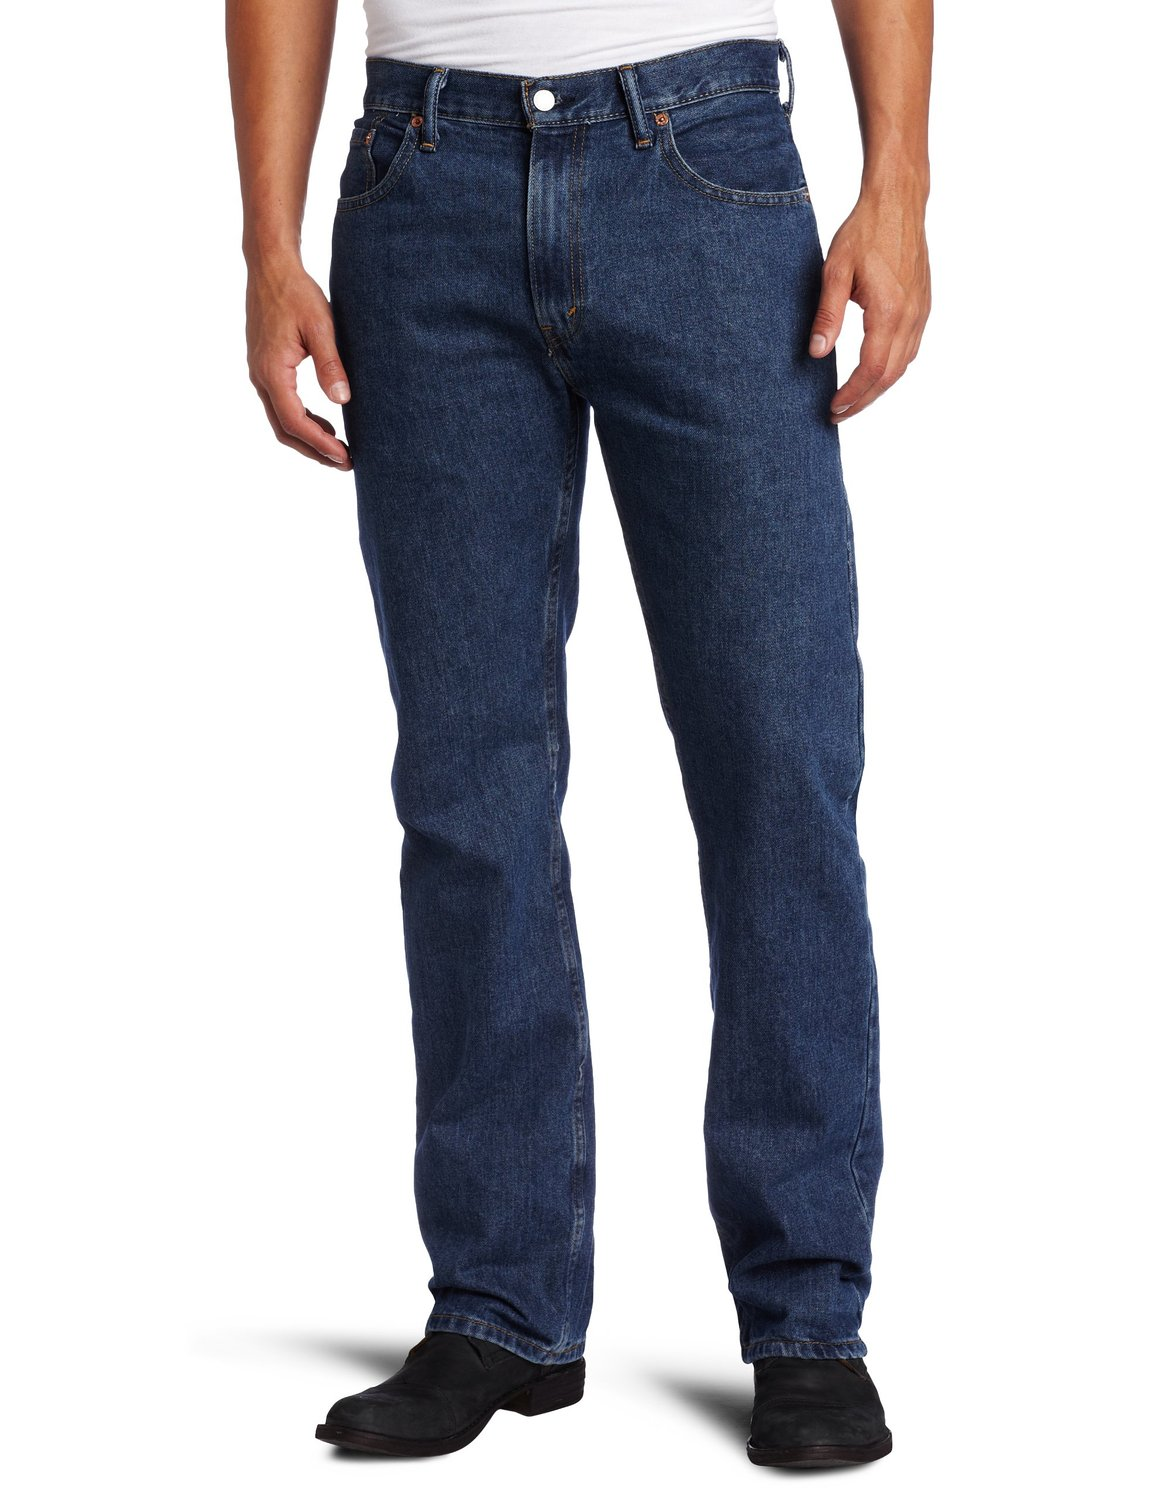 Our regular fit model features a slightly higher rise that sits up on the waist, and a traditional straight leg with a comfortable fit through the hip, thigh and knee. Our Industrial Blue wash is a 16 dip dye process that produces noticeably richer, darker denim creating a colorfast indigo that is 20% longer lasting.